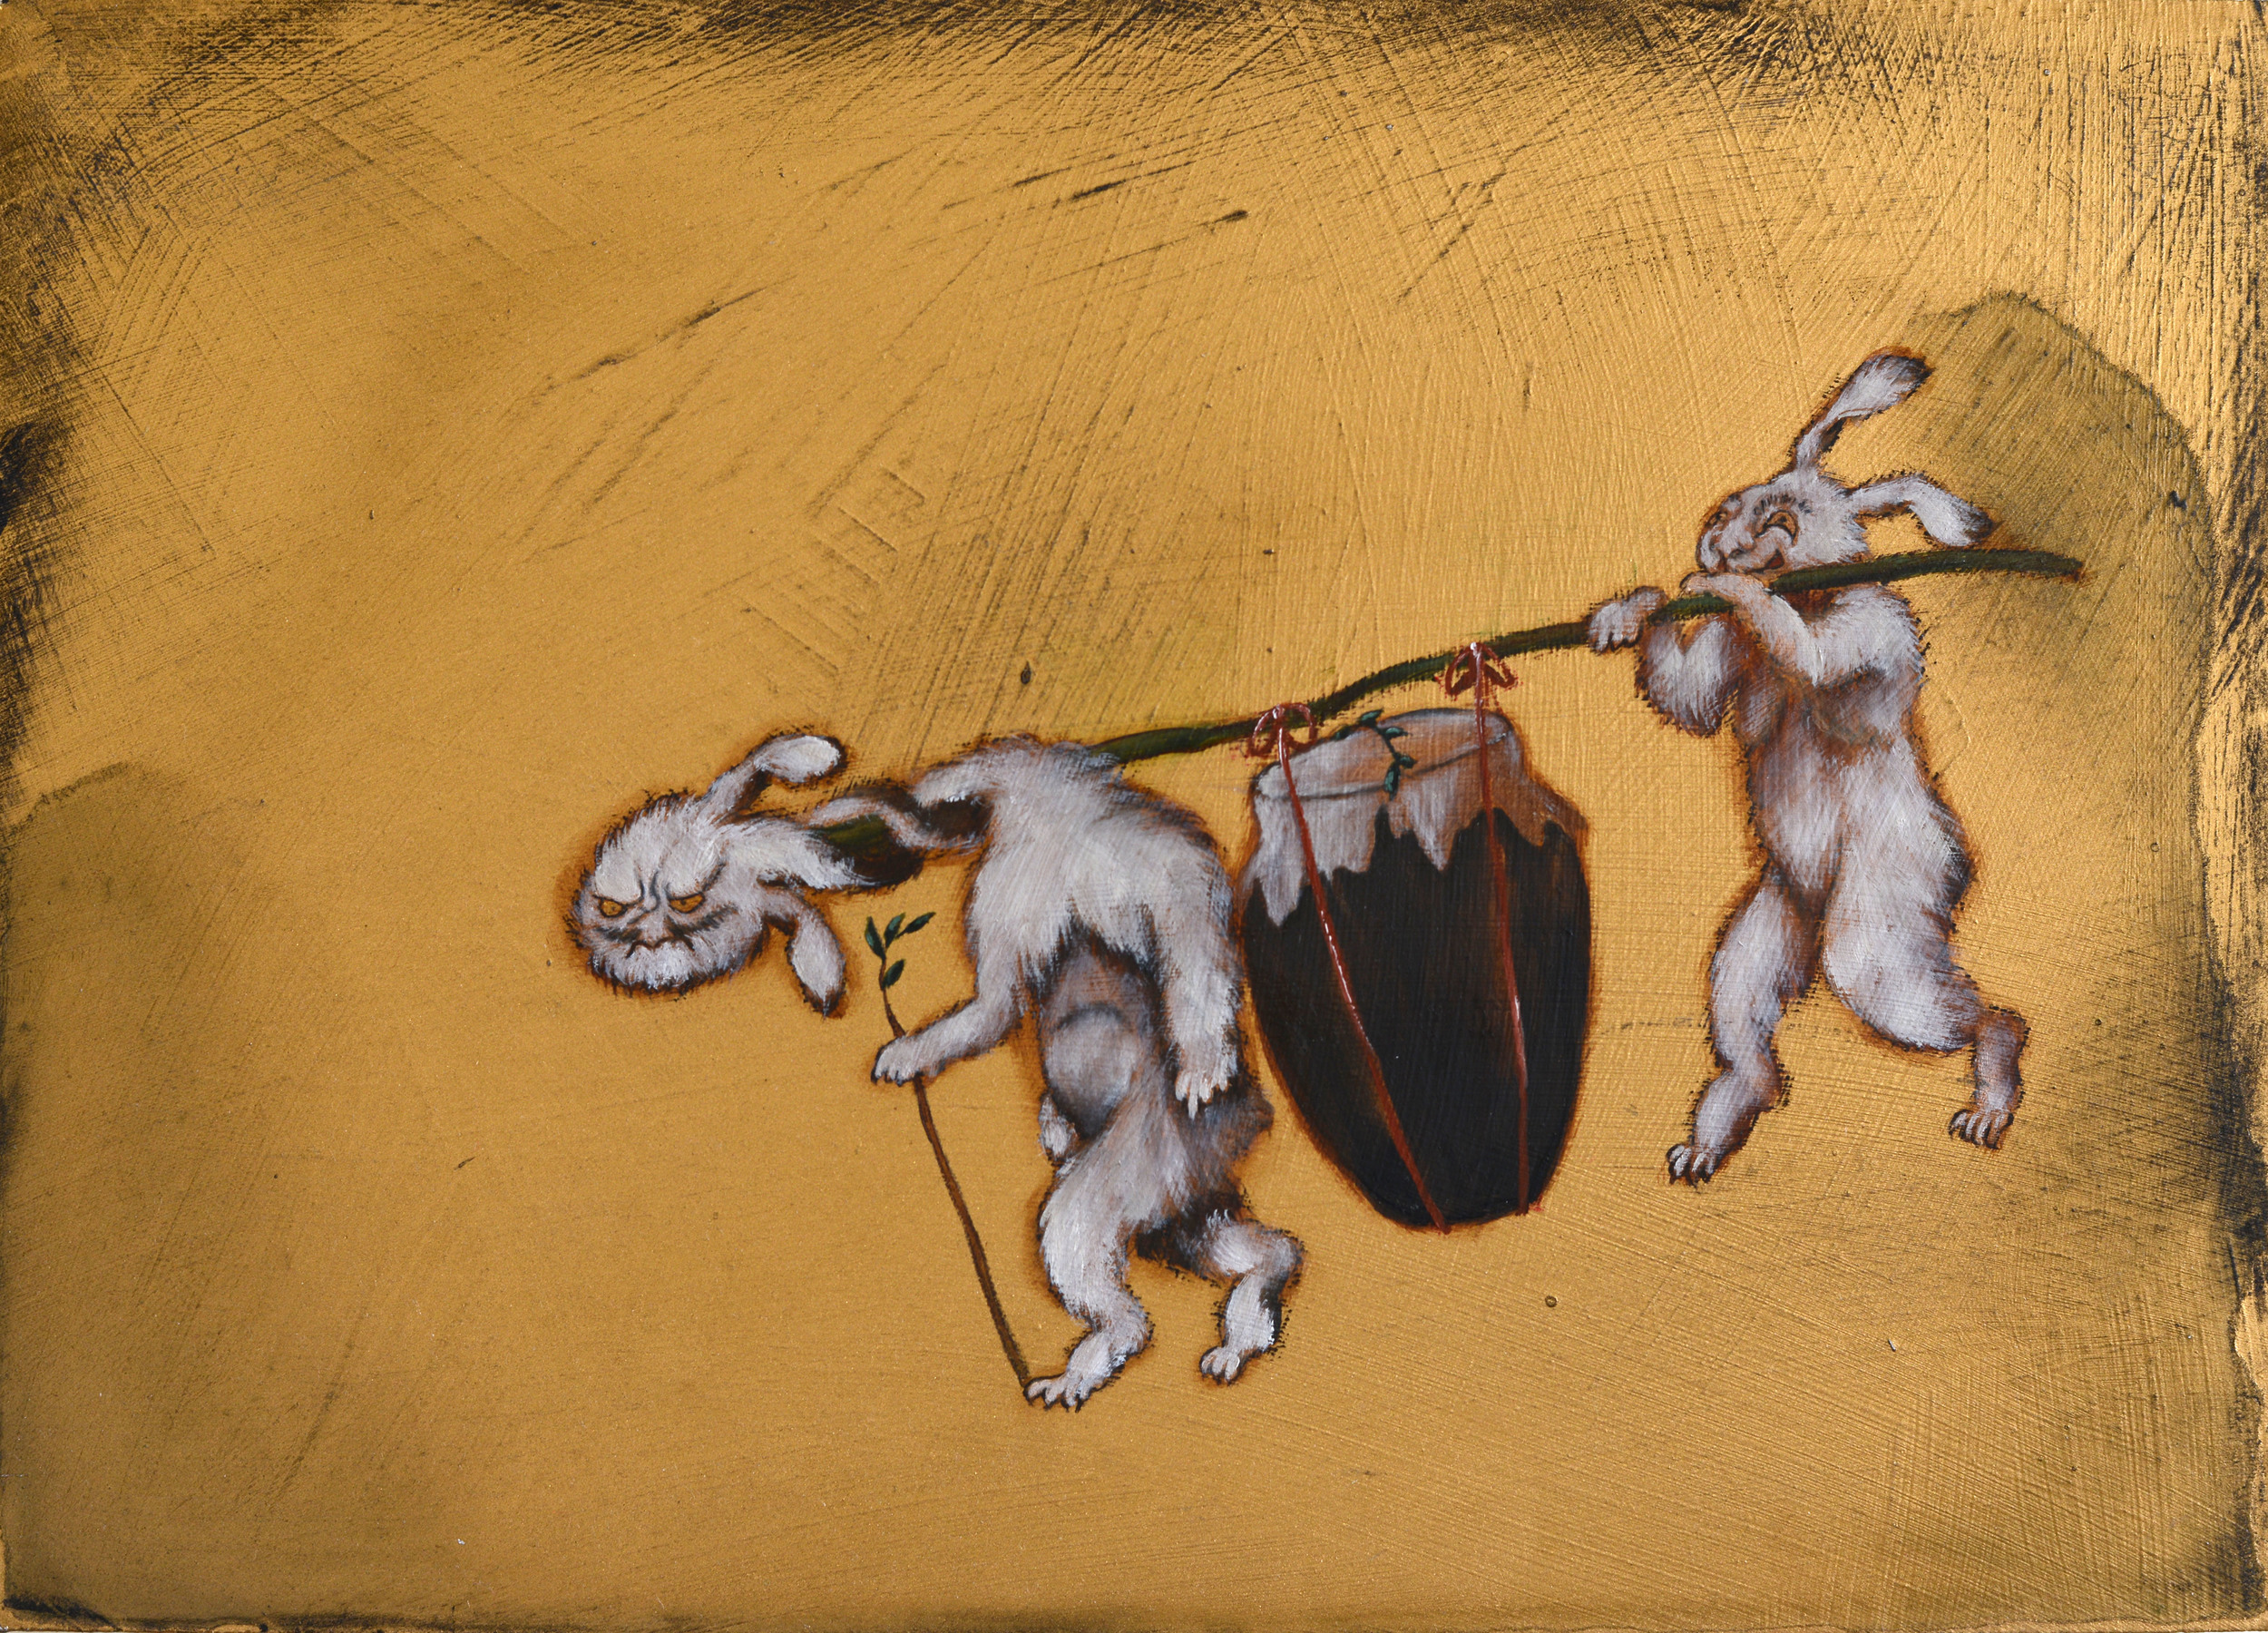 Couriers,2014, oil and acrylic on board, 21 x 30 cm